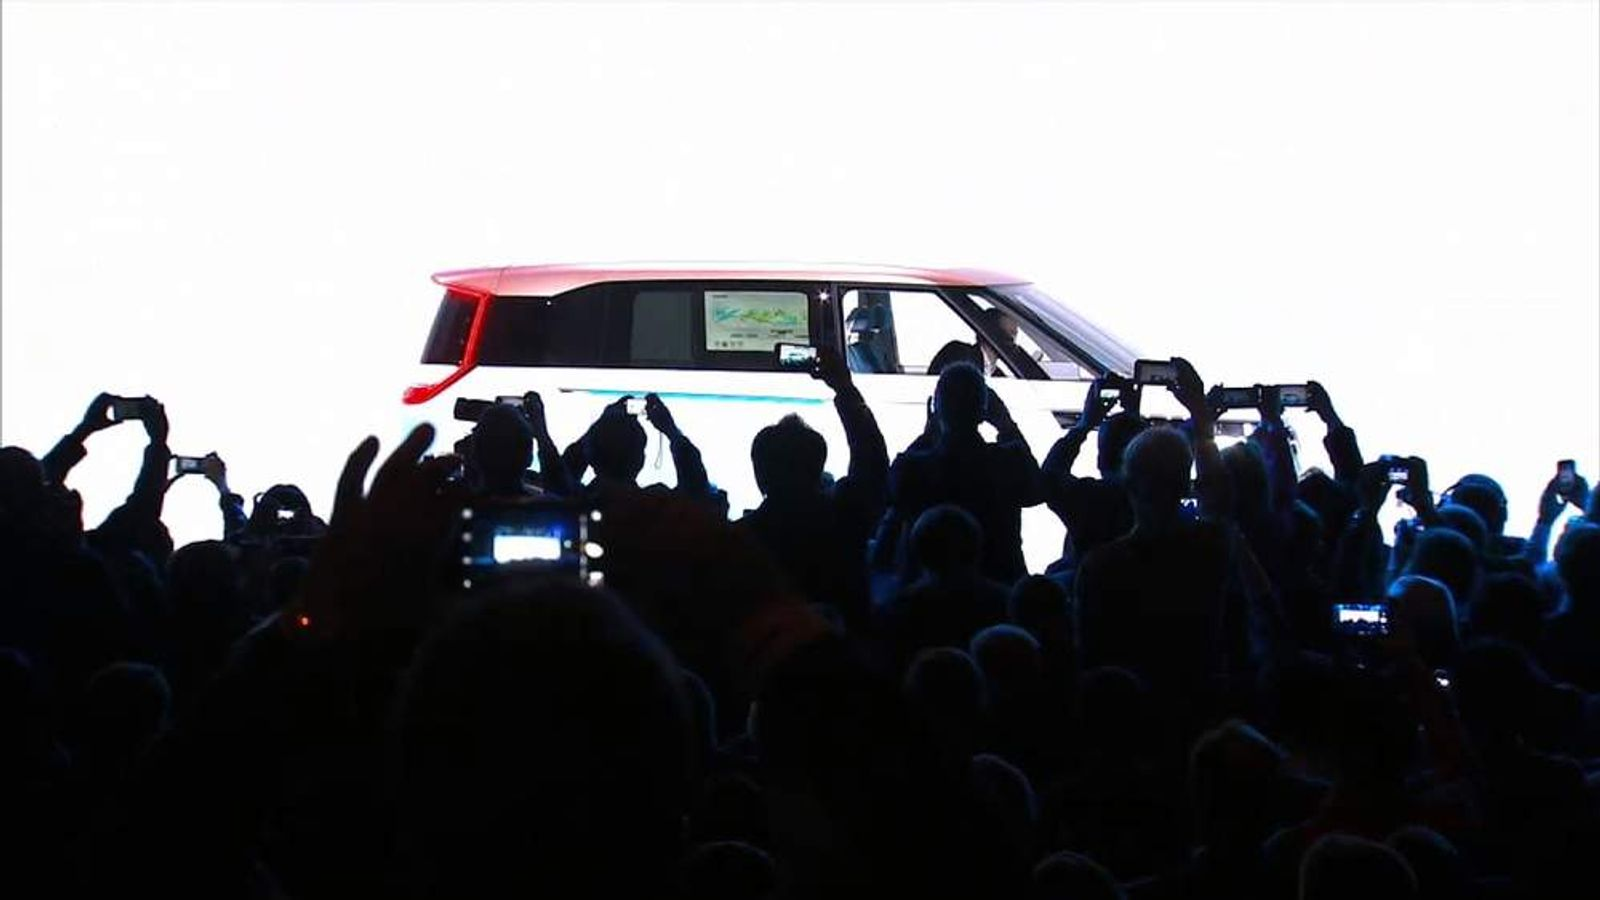 VW unveils electric car at CES trade show in Las Vegas